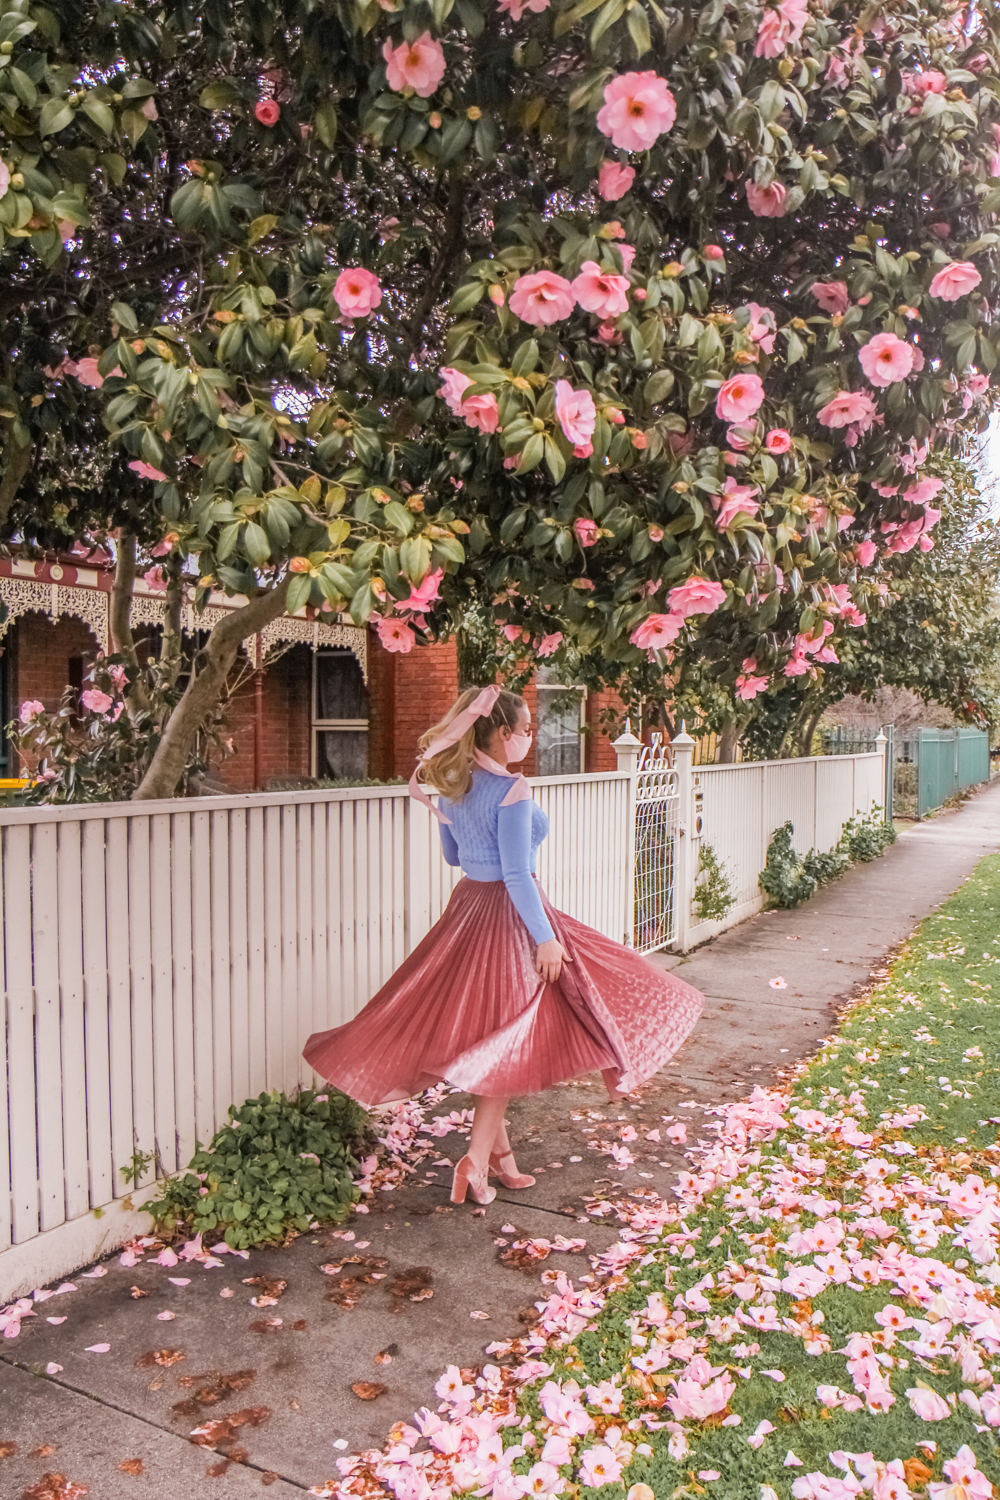 Liana stands beneath a heavily laden tree full of pink flowers. She wears pink velvet heels, a pleated pink velvet skirt, a cropped and fitted blue sweater. She also has on a pretty pink linen mask which ties with a bow that drapes either side of her ponytail